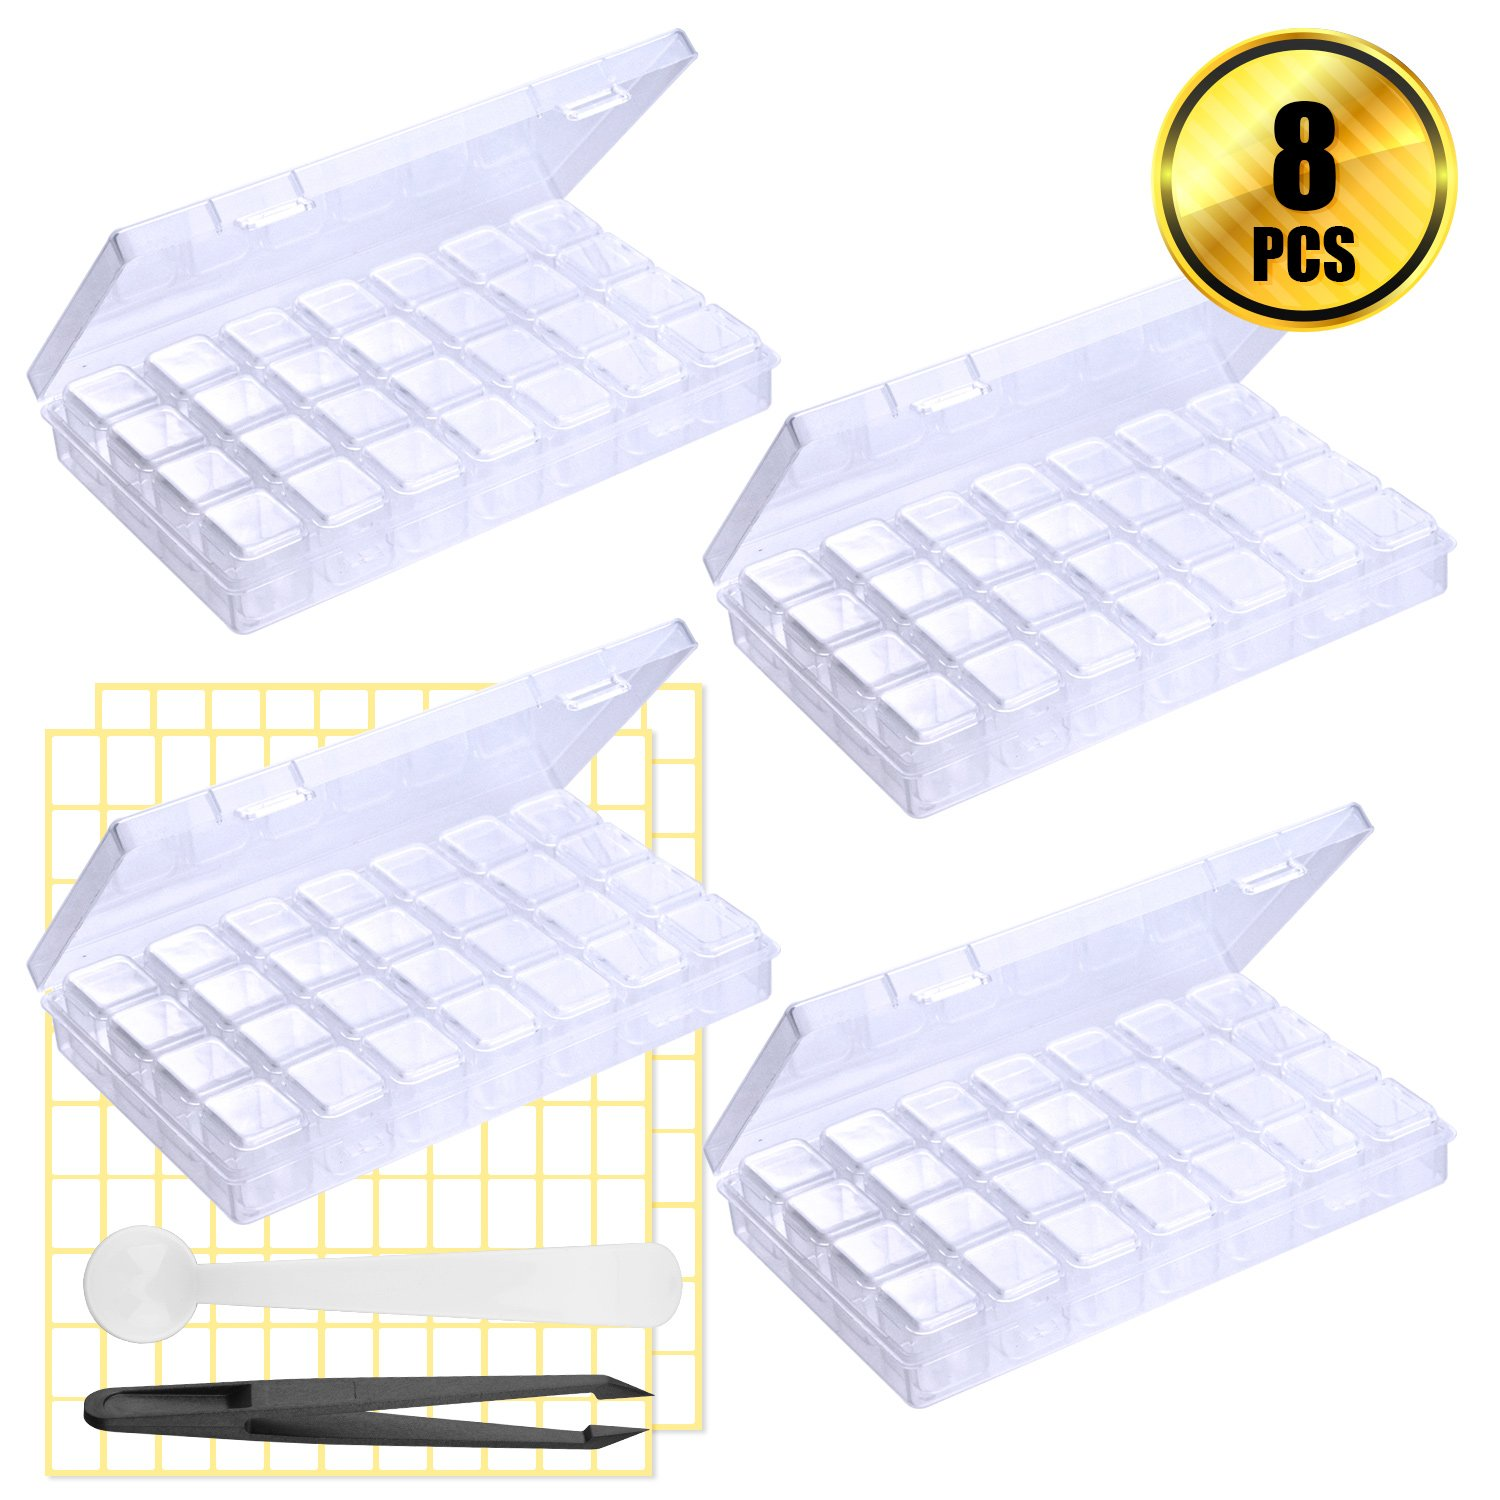 WXJ13 4 Pack 28 Grids Adjustable Storage Boxes 5D Diamond Painting Accessories Storage Box with 2 Pack Blank Label Sticks and 1 Piece Spoon